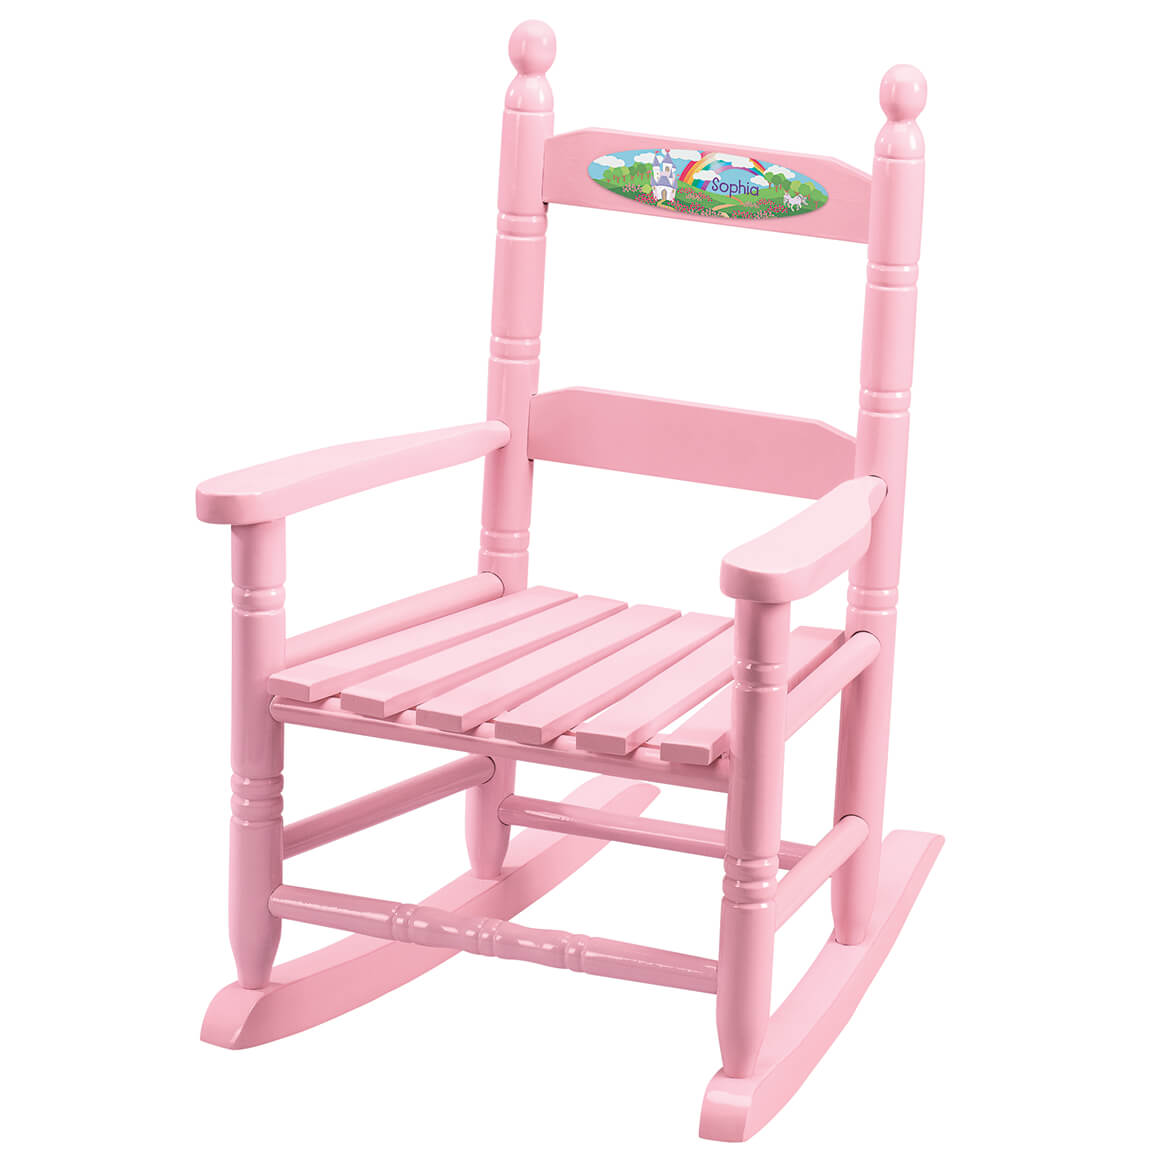 Personalized Princess Children's Rocking Chair-371718